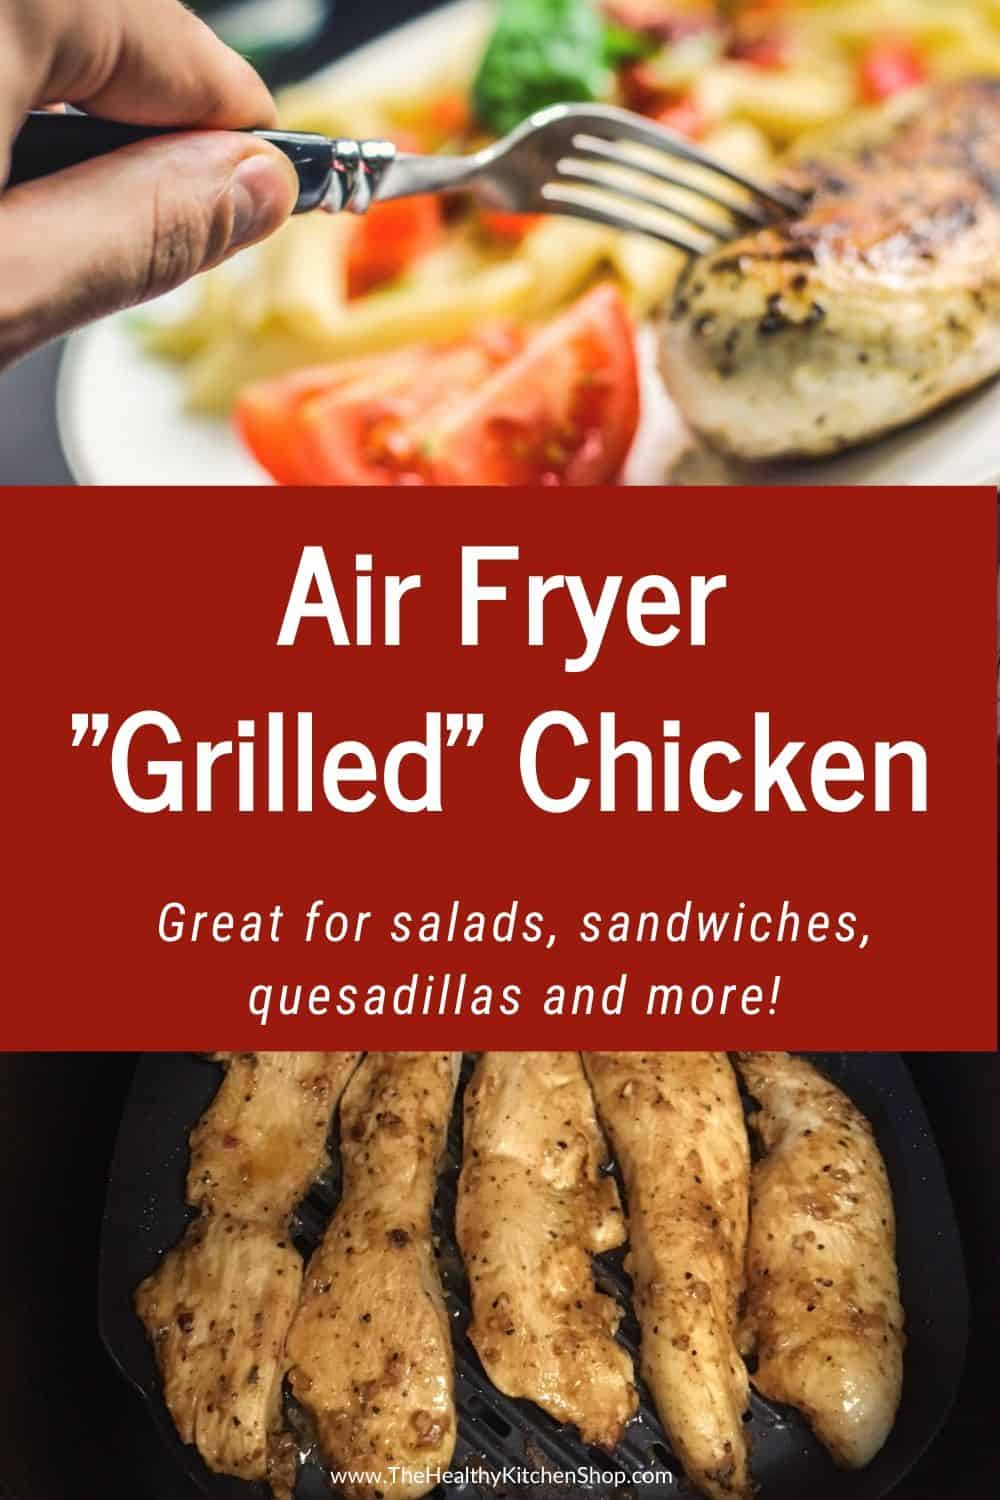 Air Fryer Grilled Chicken - TheHealthyKitchenShop.com